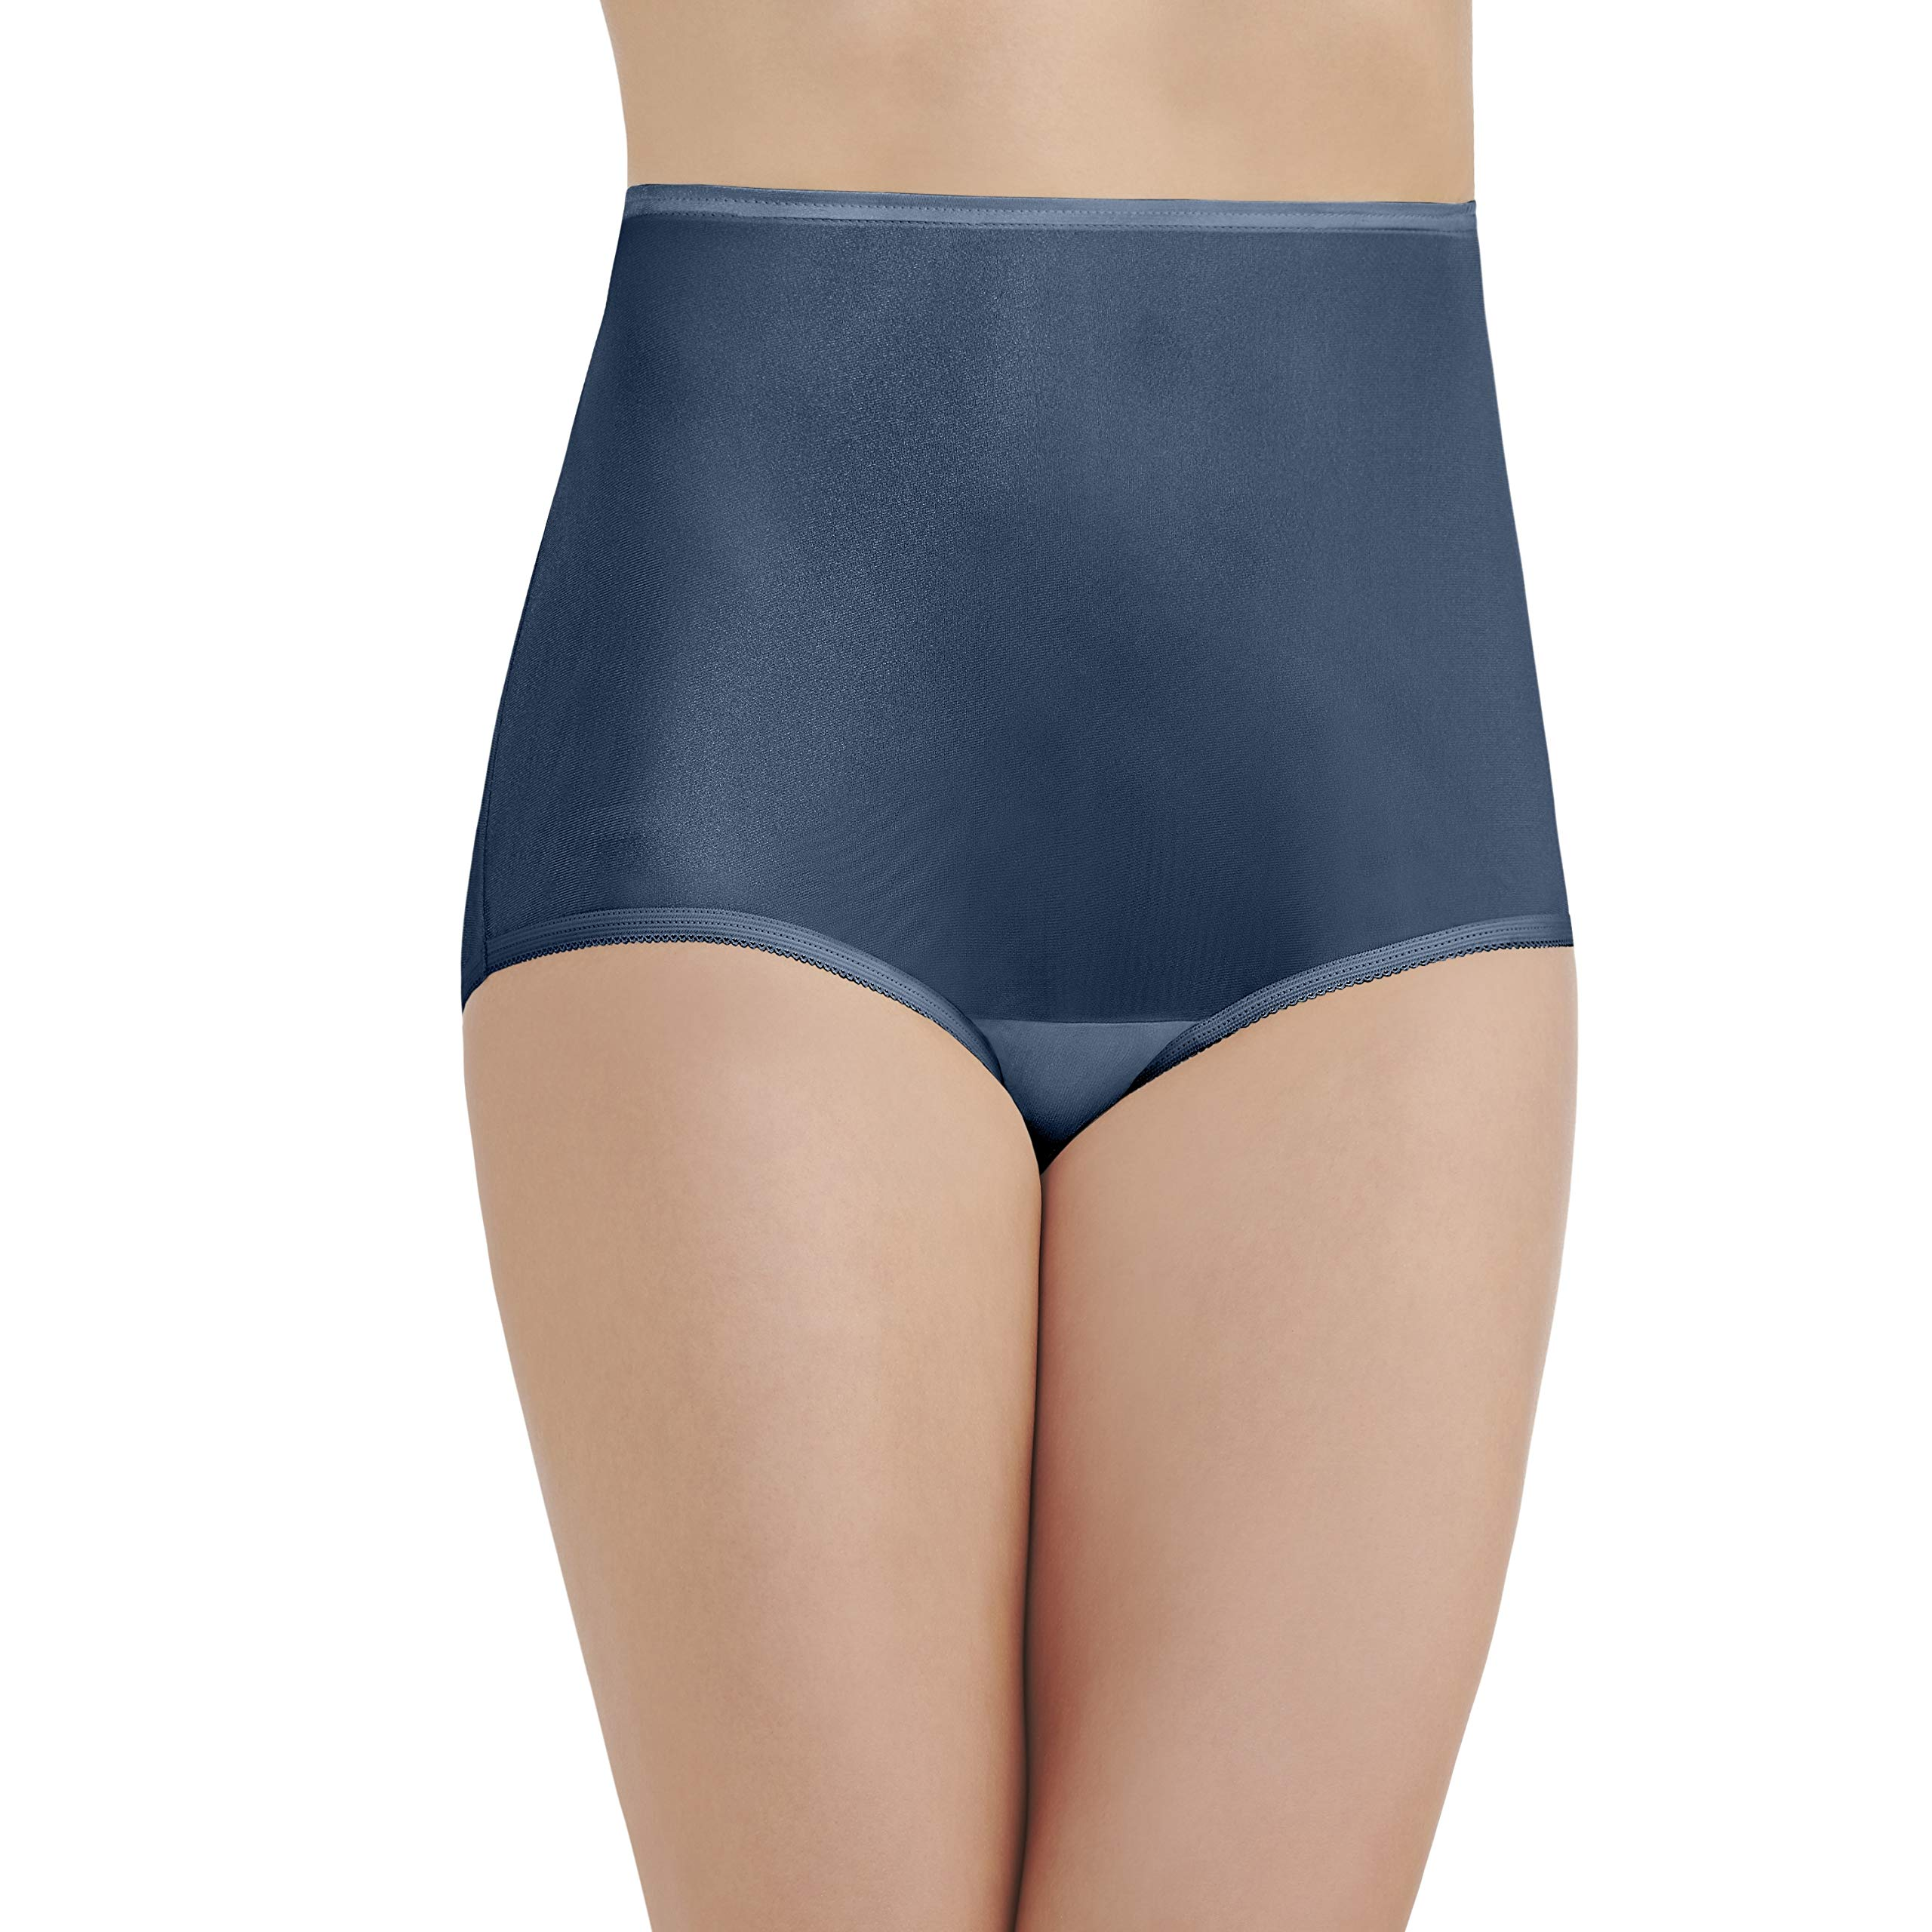 c3dc65d08 Galleon - Vanity Fair Women s Perfectly Yours Ravissant Tailored Brief Panty  15712